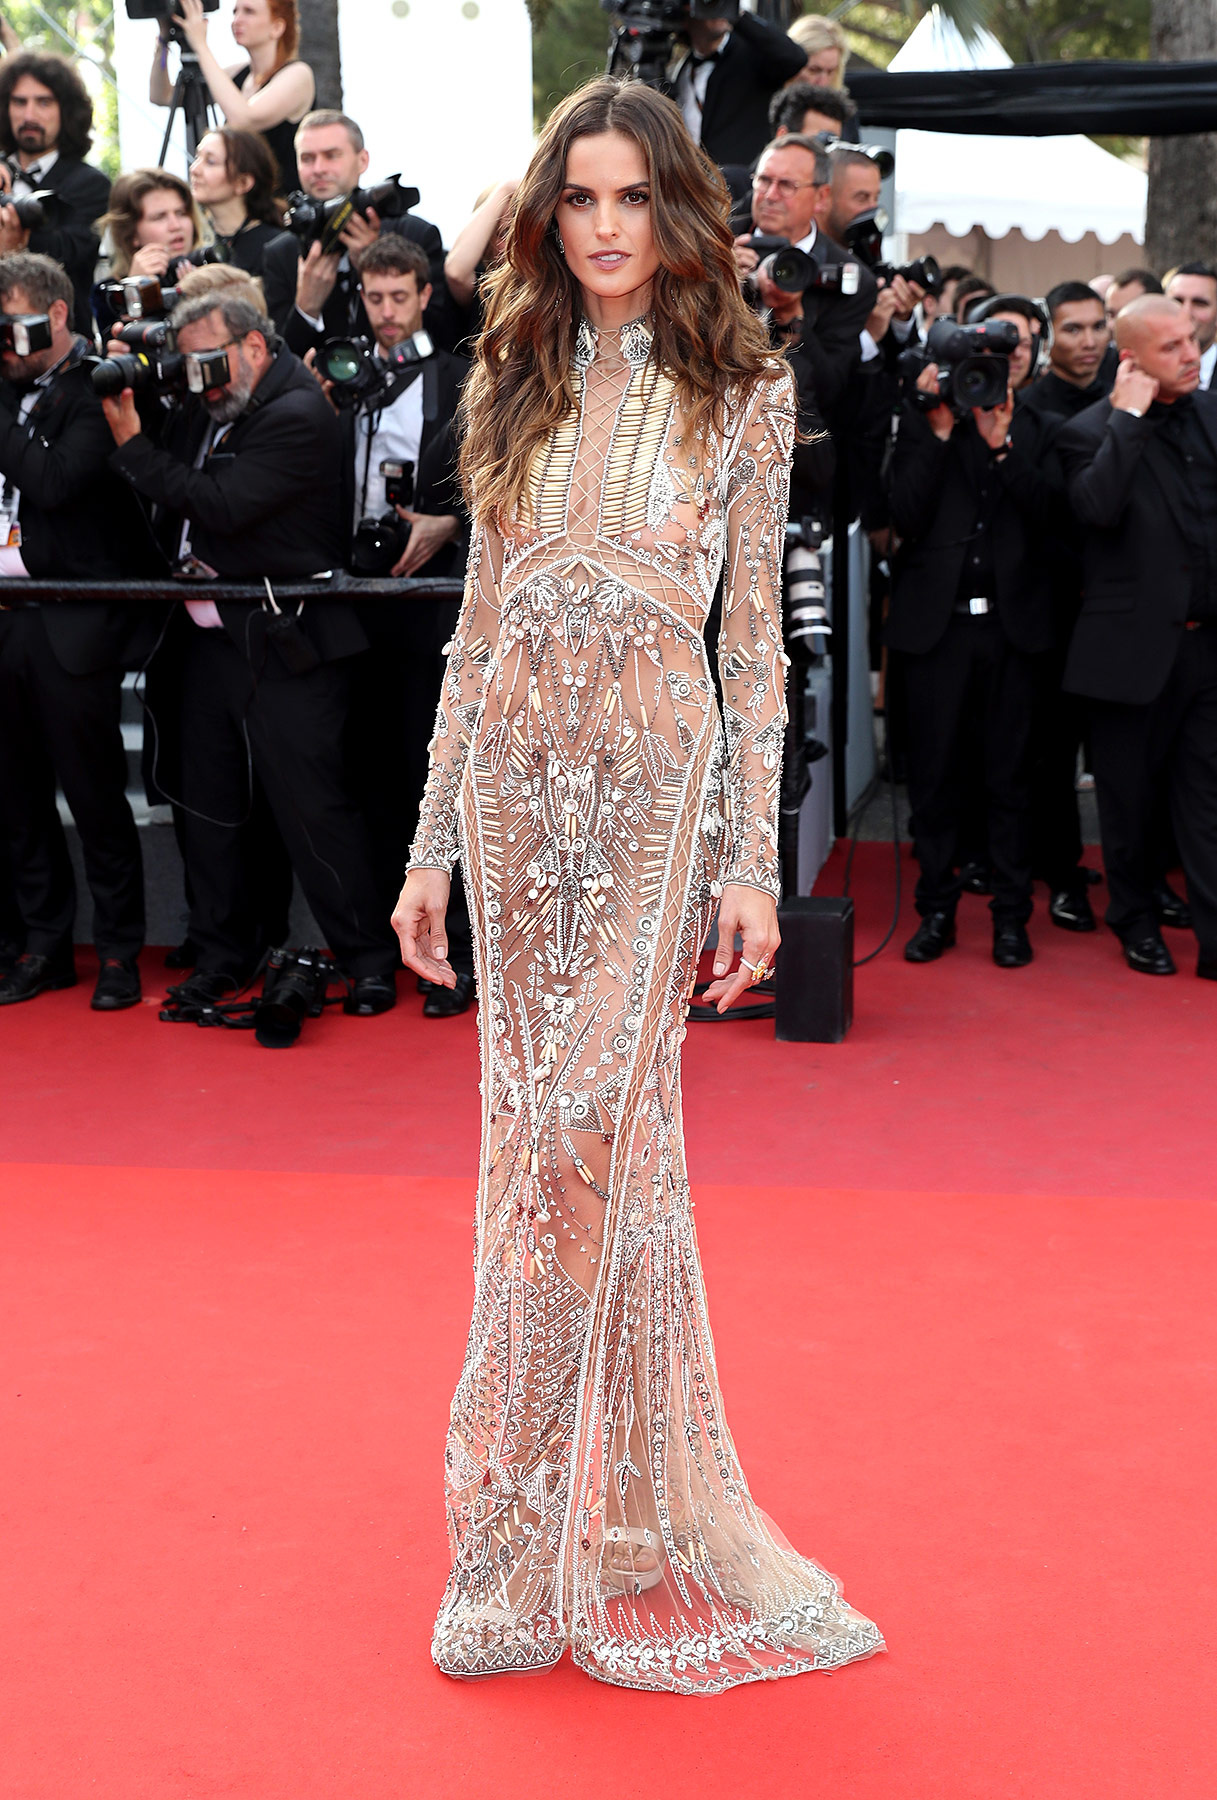 La alfombra roja del festival de cine de cannes top 10 bestdressed apparentia - Dresses from the red carpet ...